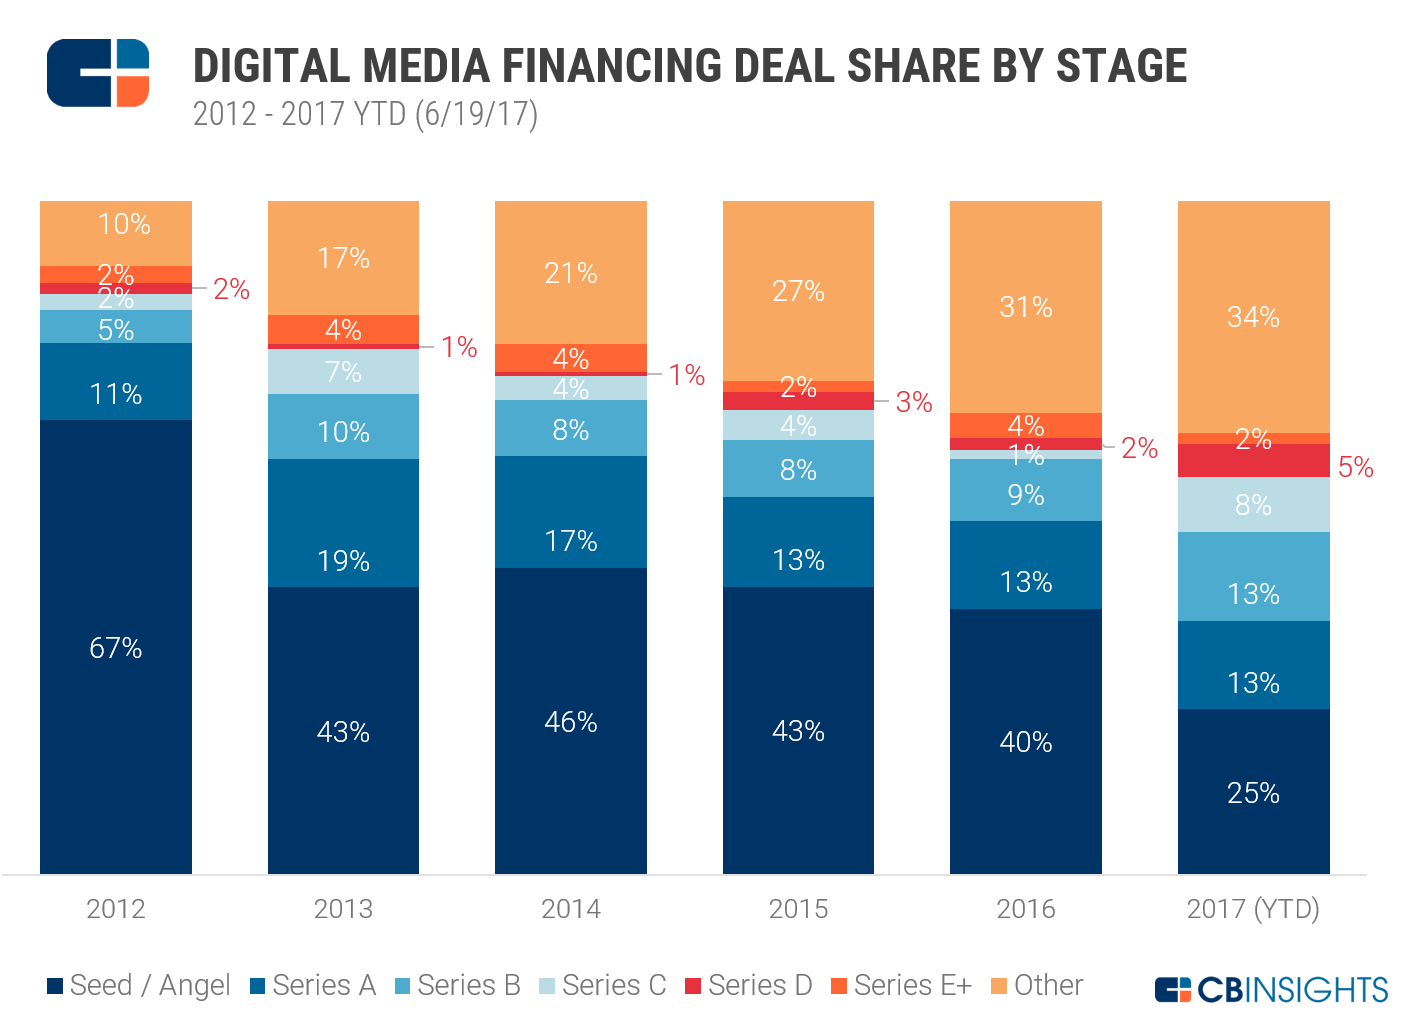 Digital Media Deal Share by Stage (2012-2017 YTD)_NEW